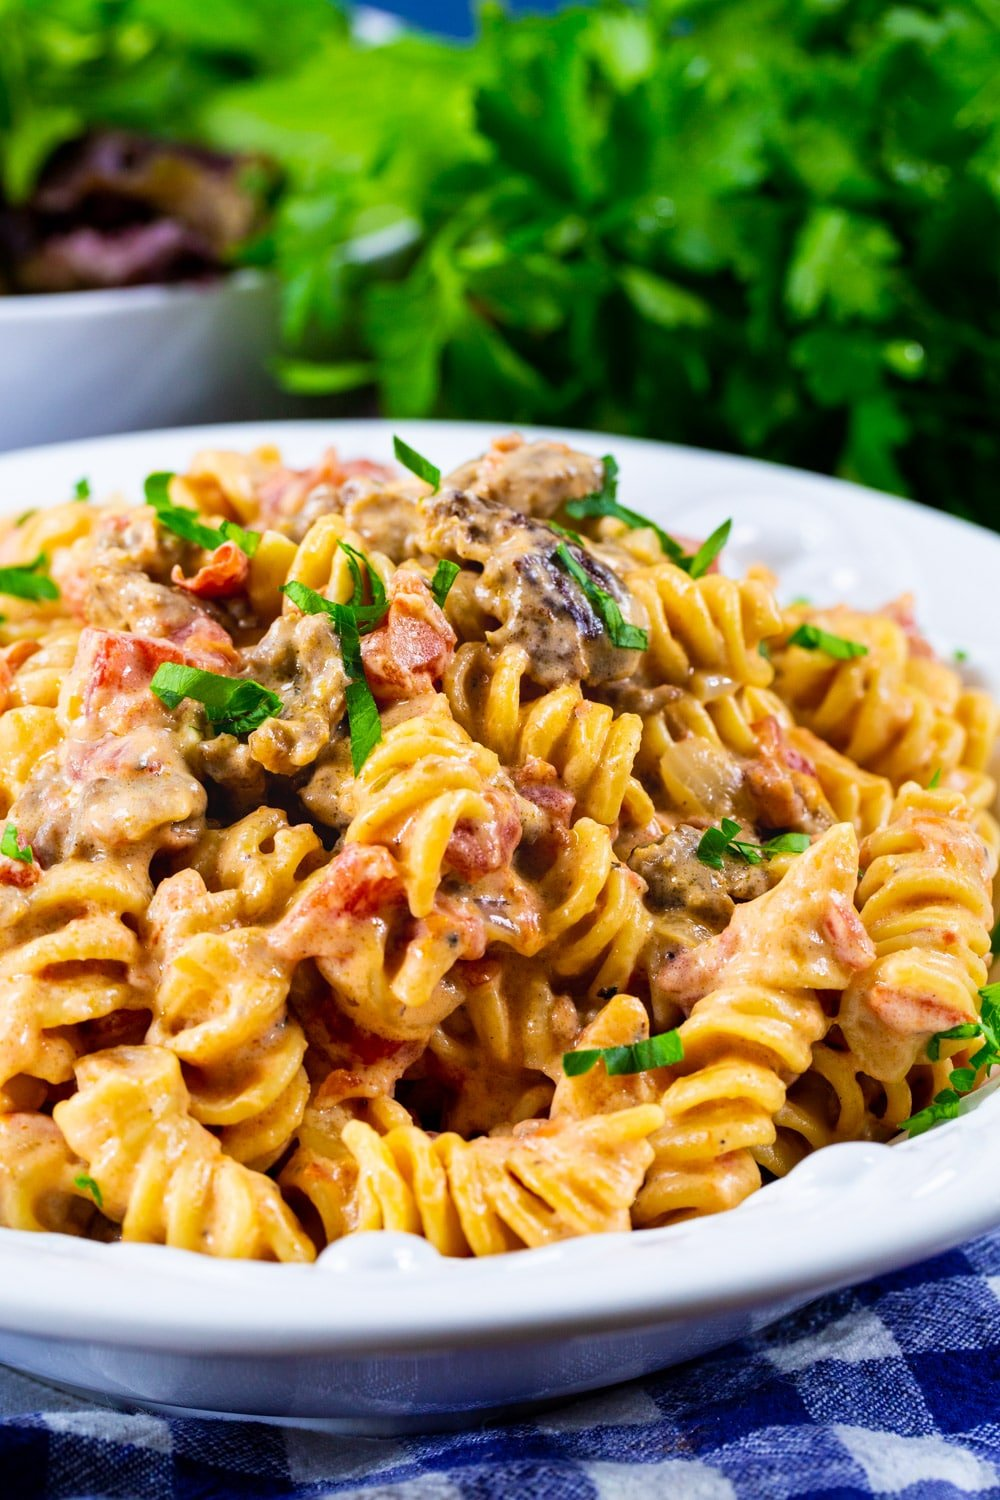 Creamy Rotel Pasta with Sausage in bowl with parsley in background.